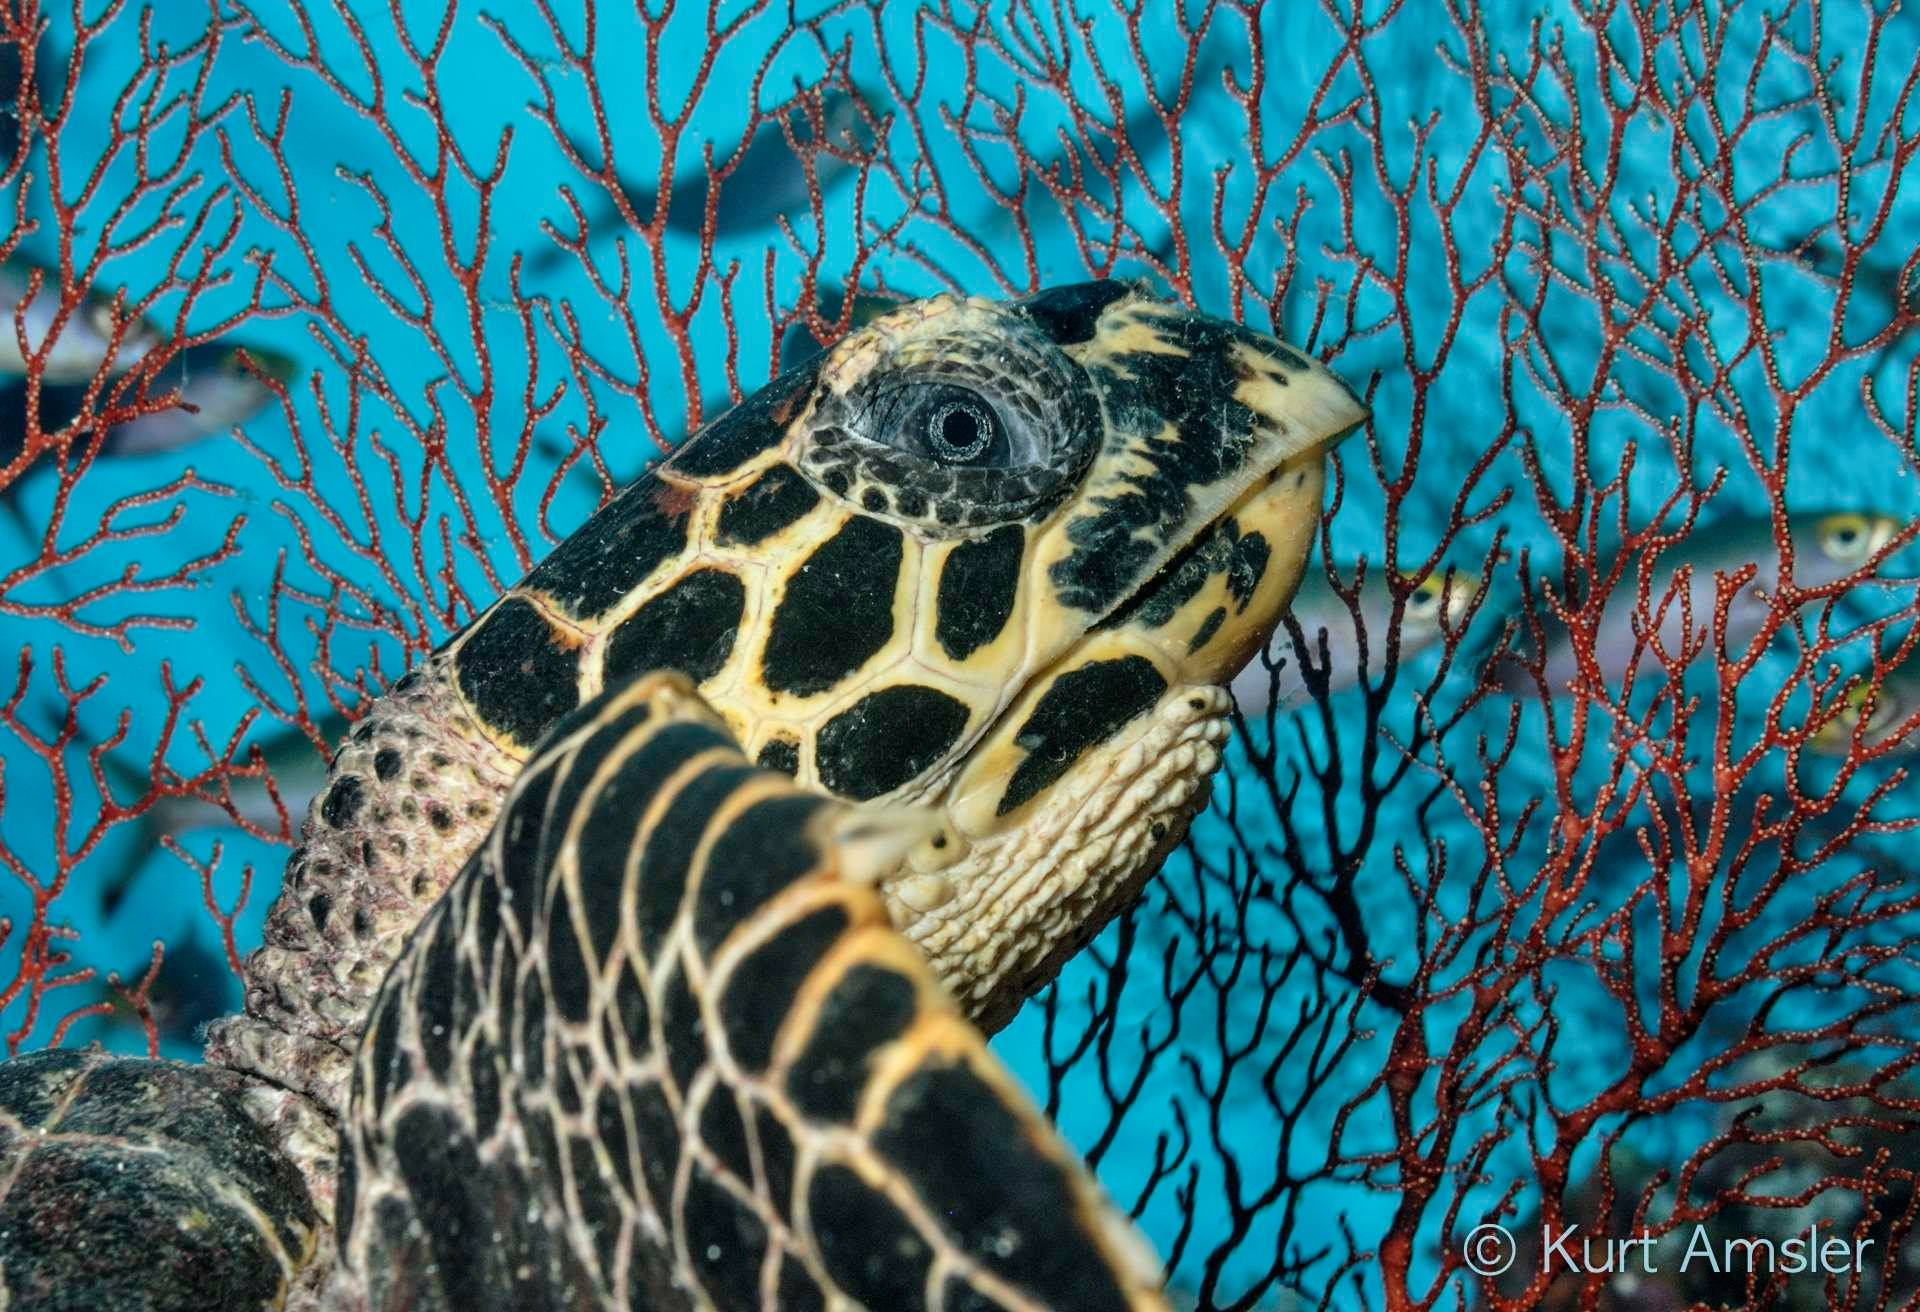 Hawksbill turtle portrait by Kurt Amsler